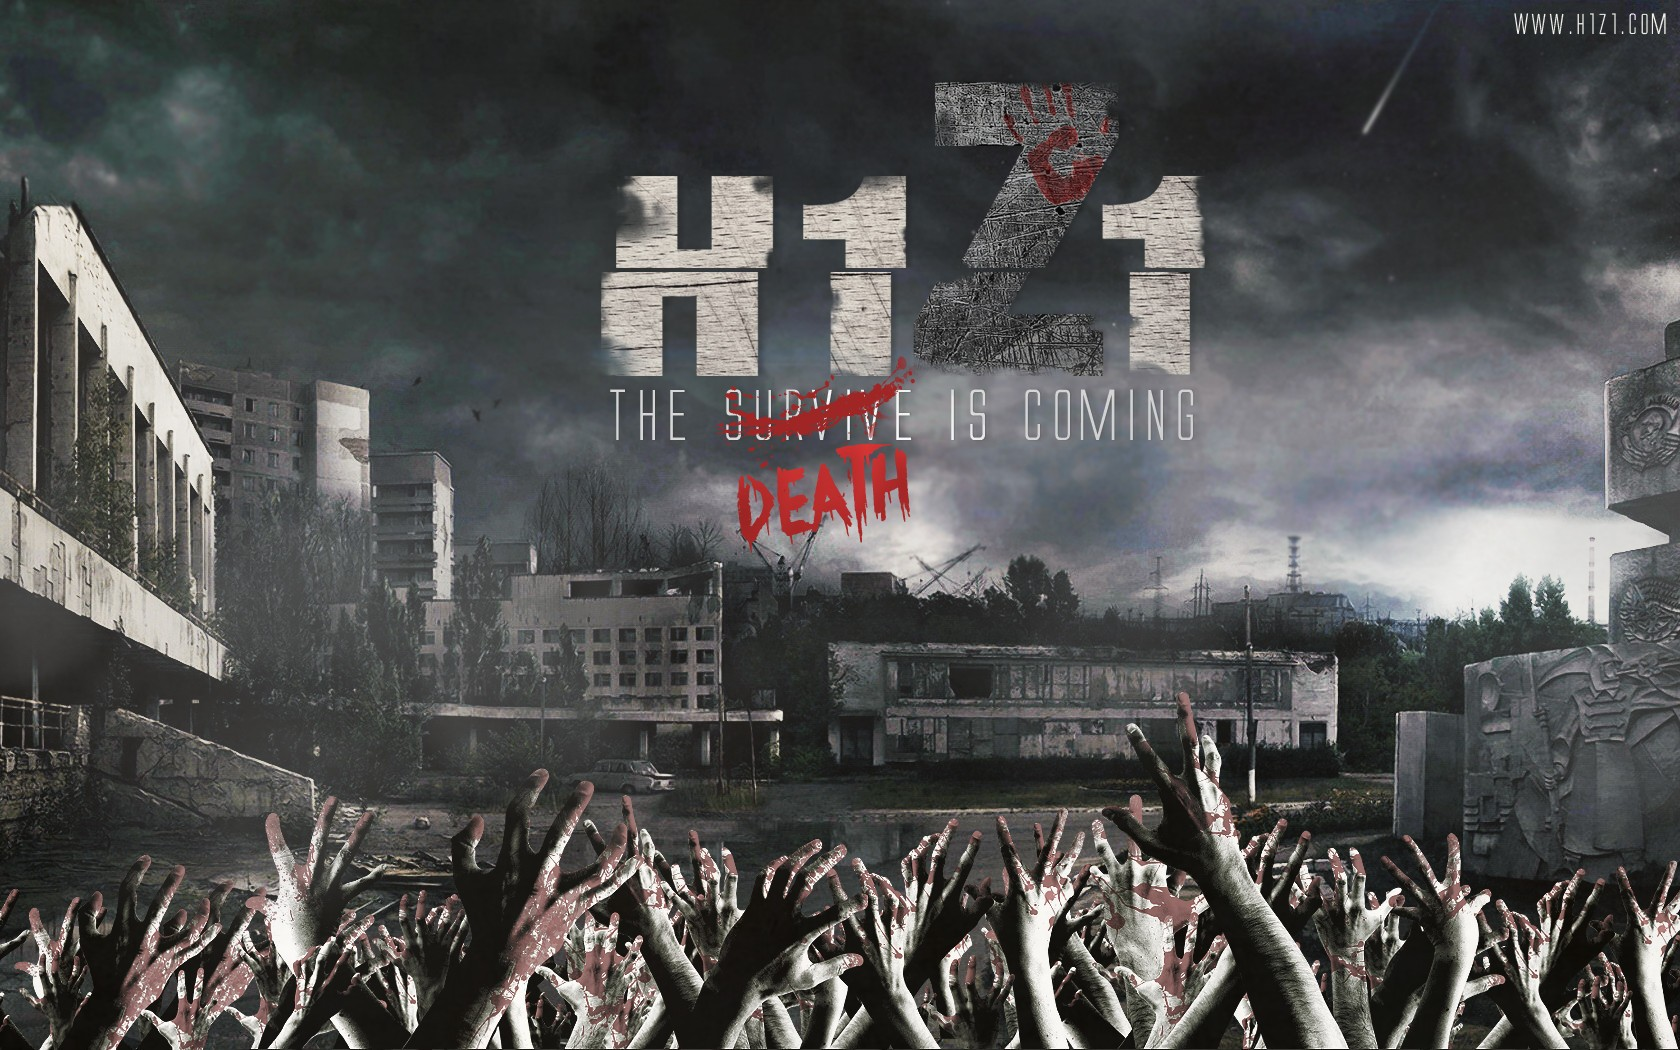 H1Z1 Servers Up Again, New Update Fixes Loot and Events Issues